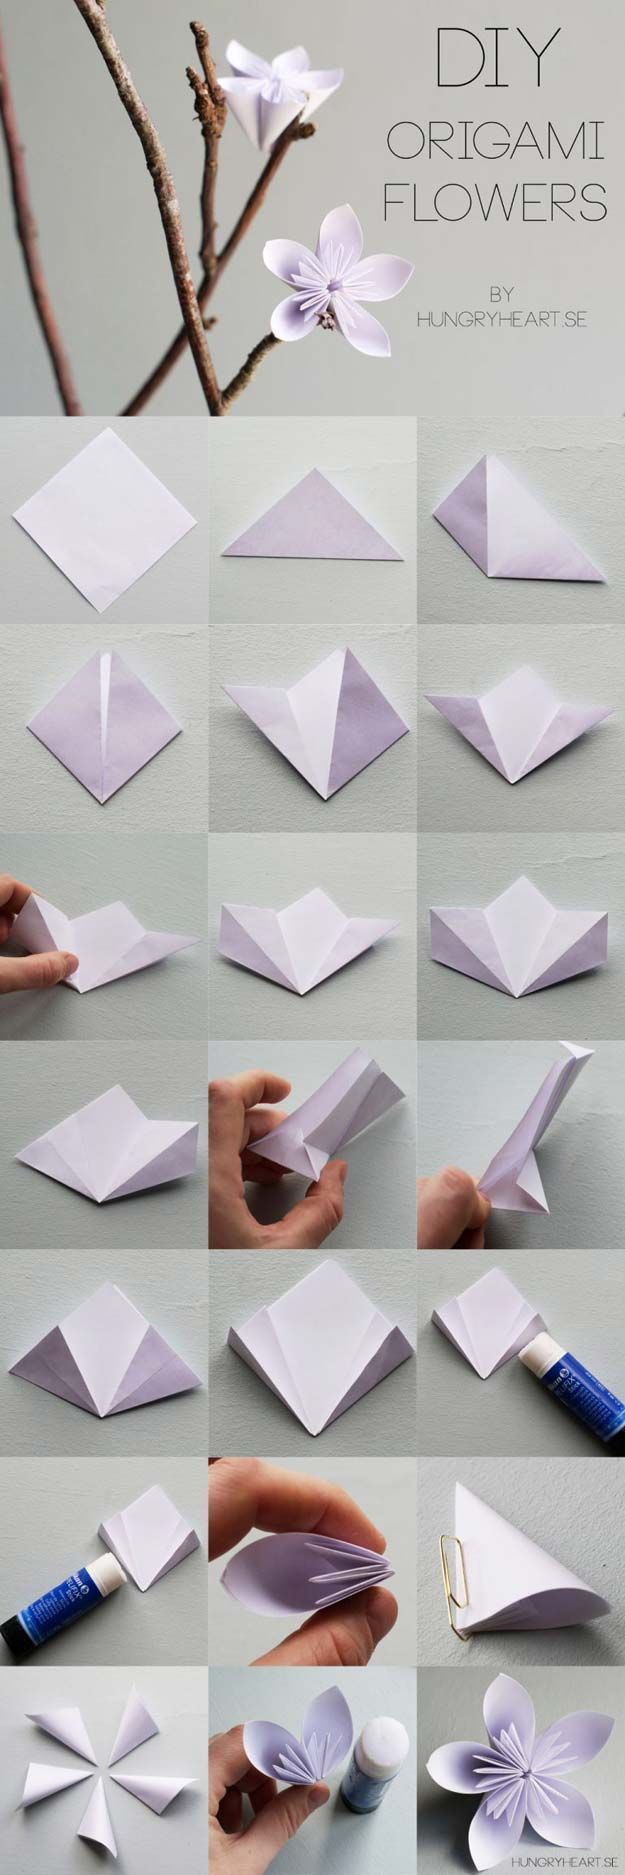 40 Best DIY Origami Projects To Keep Your Entertained Today #holidaytreats